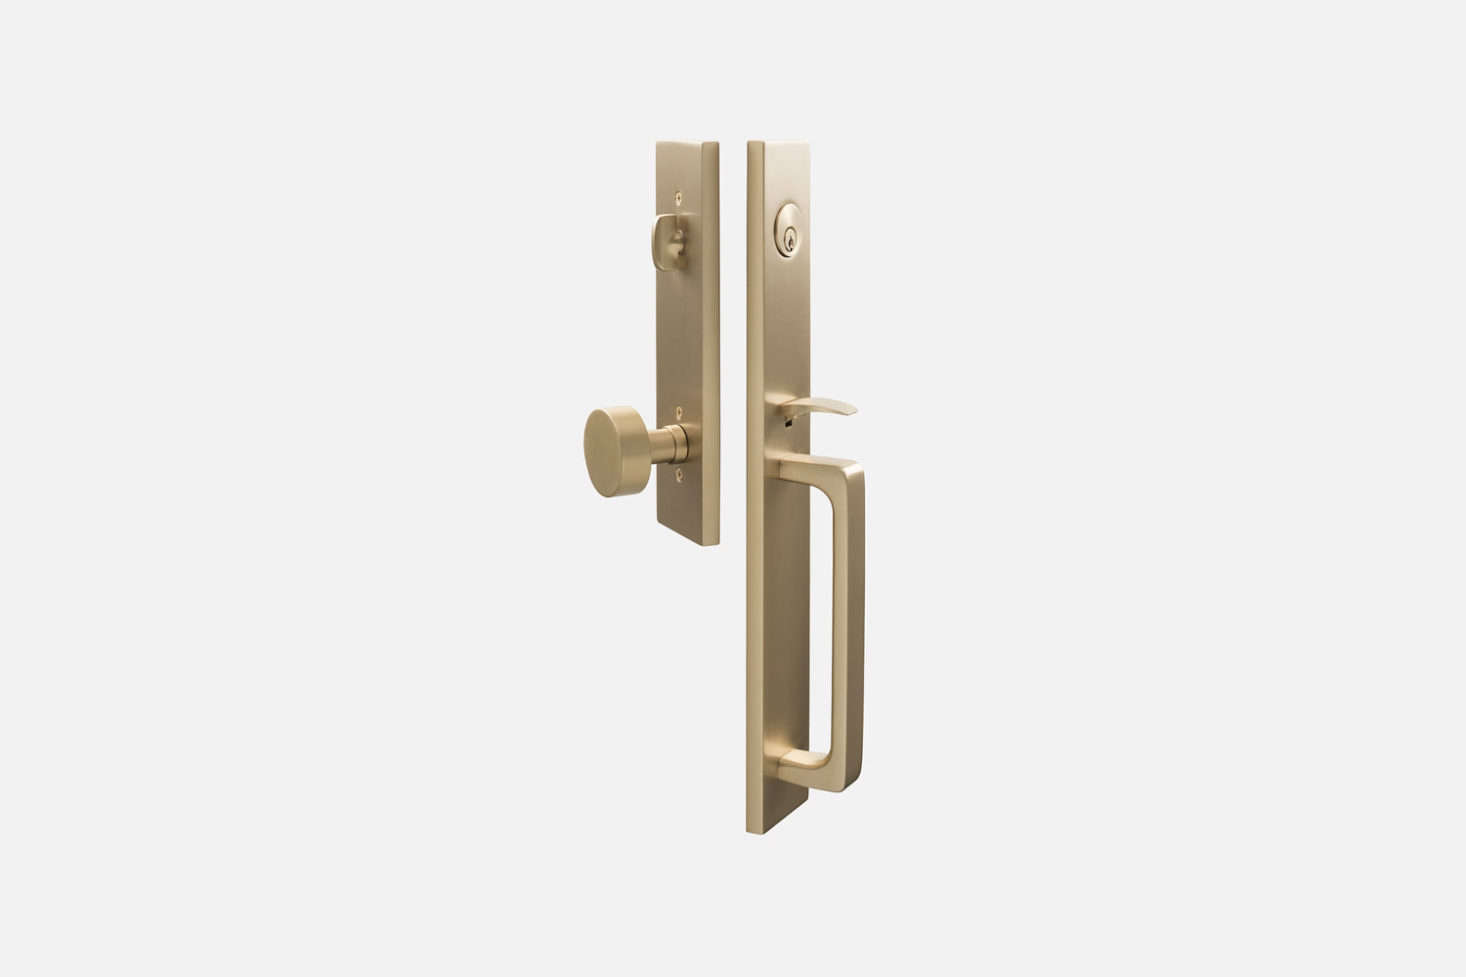 Another style from Emek available at Schoolhouse, the Lausanne Entrance Handleset with Cylinder Knob, shown in Satin Brass, for $364.